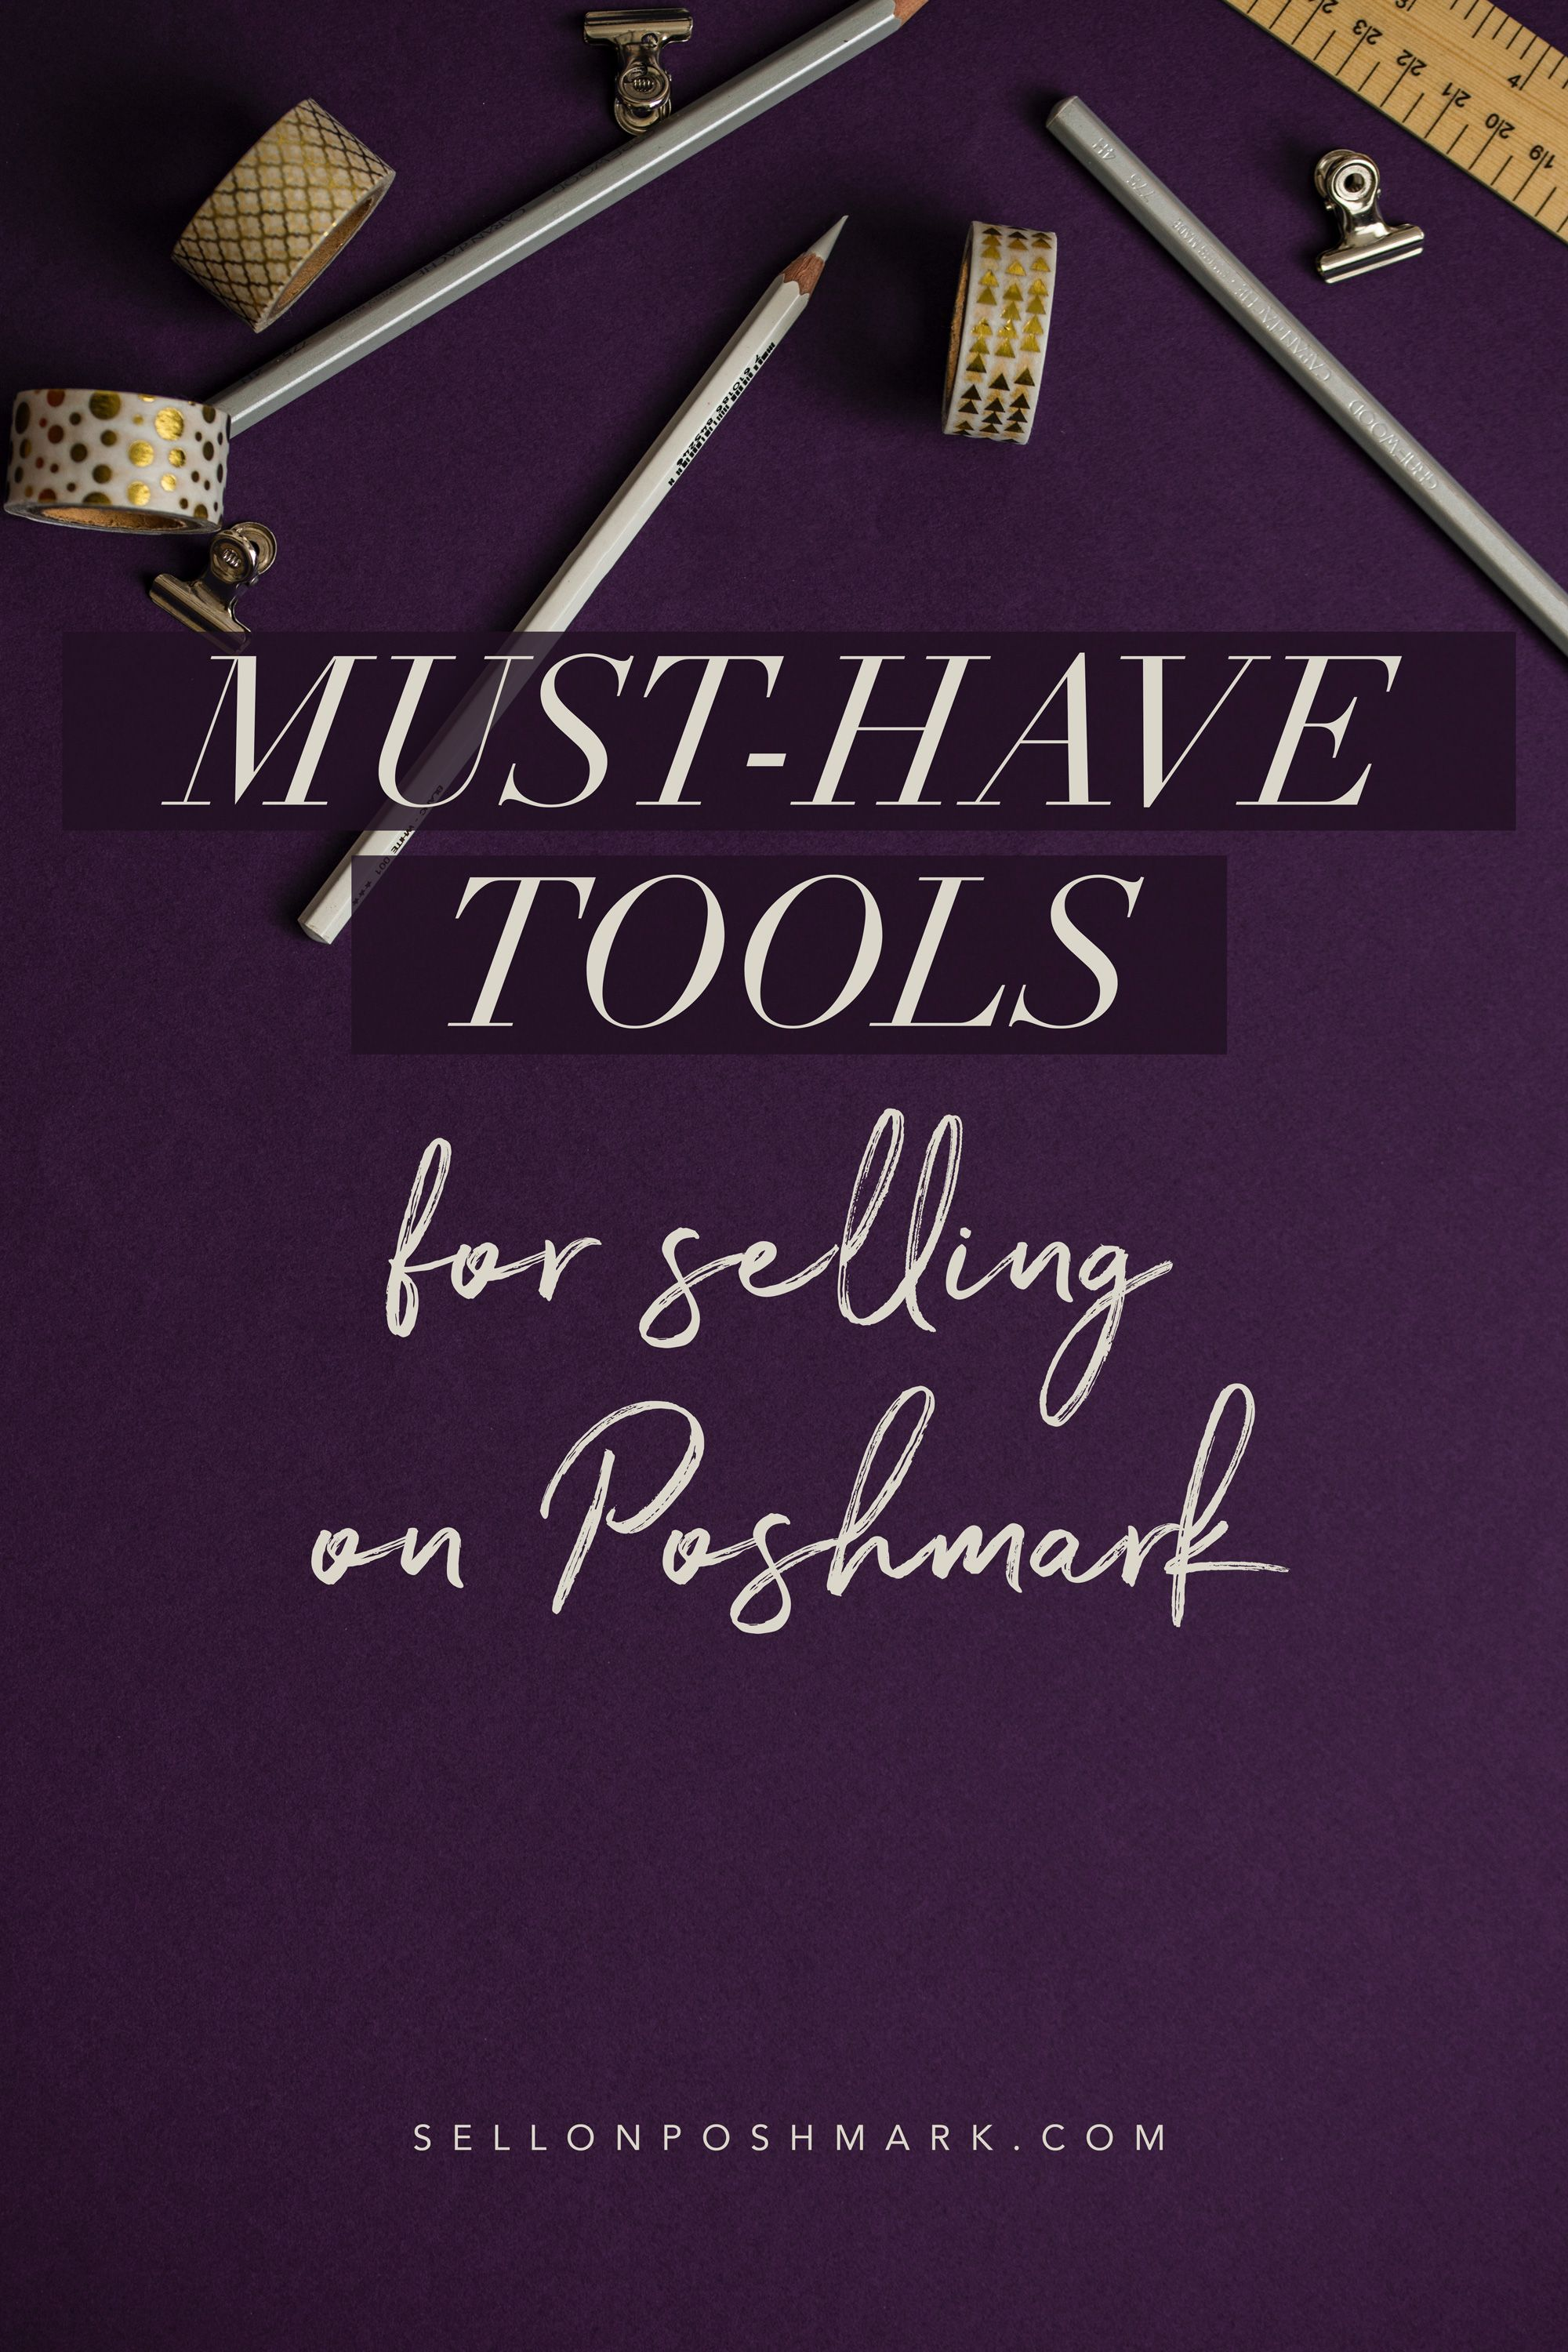 Must Have Tools For Selling On Poshmark Sellonposhmark Com In 2020 Selling On Poshmark Must Have Tools Ebay Selling Tips